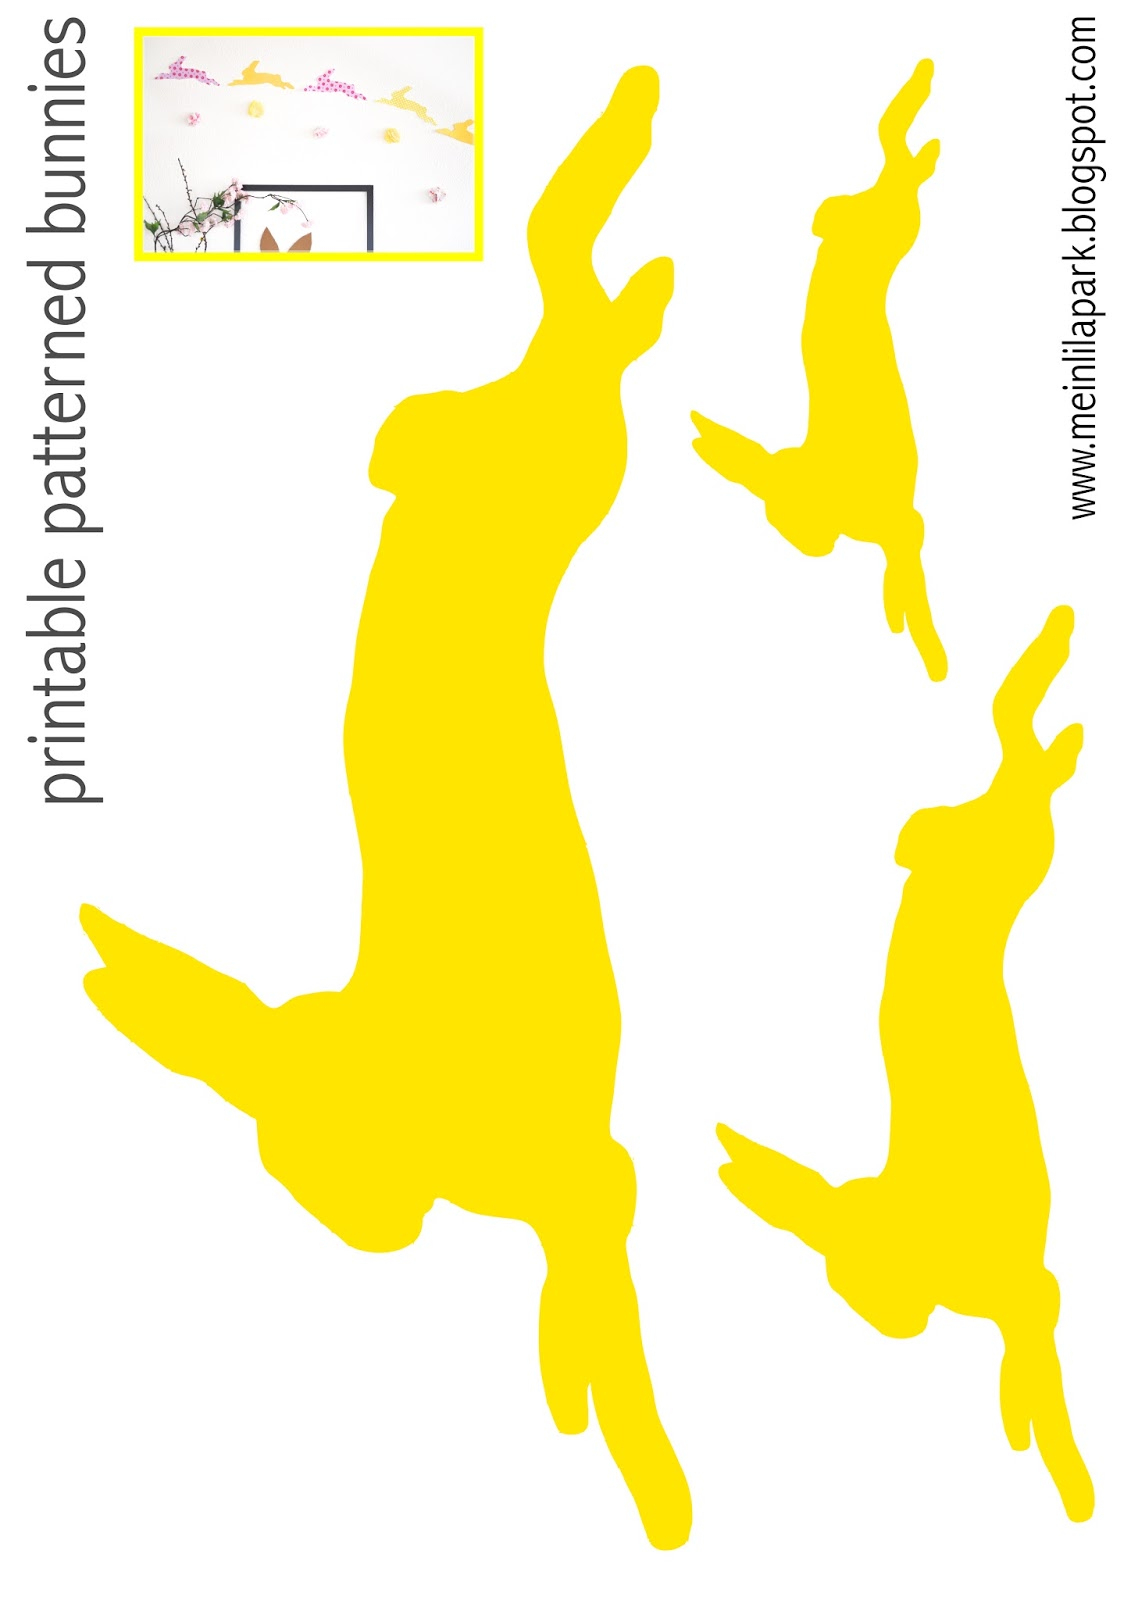 Free Printable Patterned Bunny Templates - Ausdruckbare Hasen - Free Printable Bunny Templates